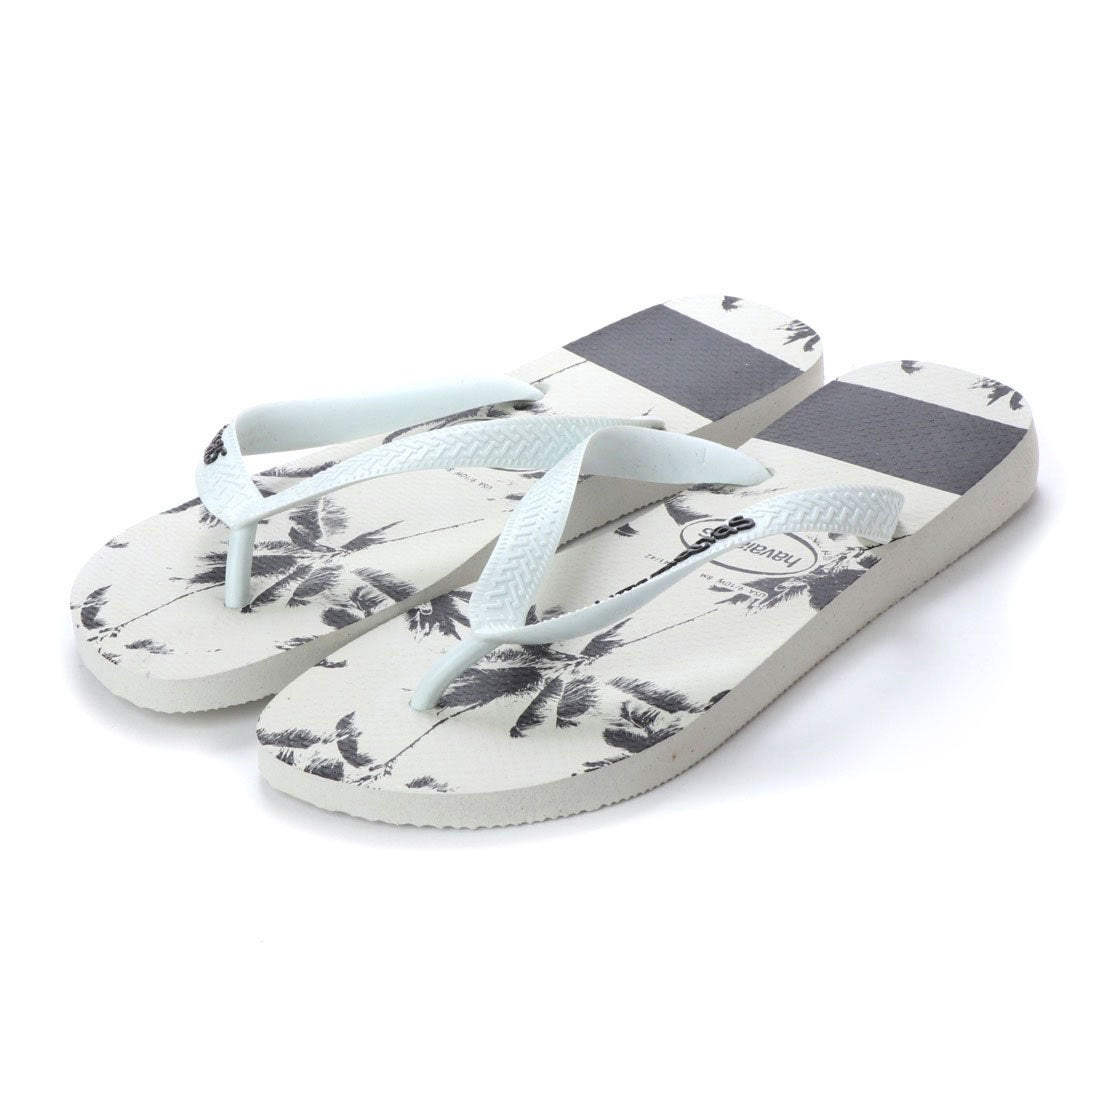 ハワイアナス havaianas TOP STRIPES LOGO (kids sizes) (white/black)